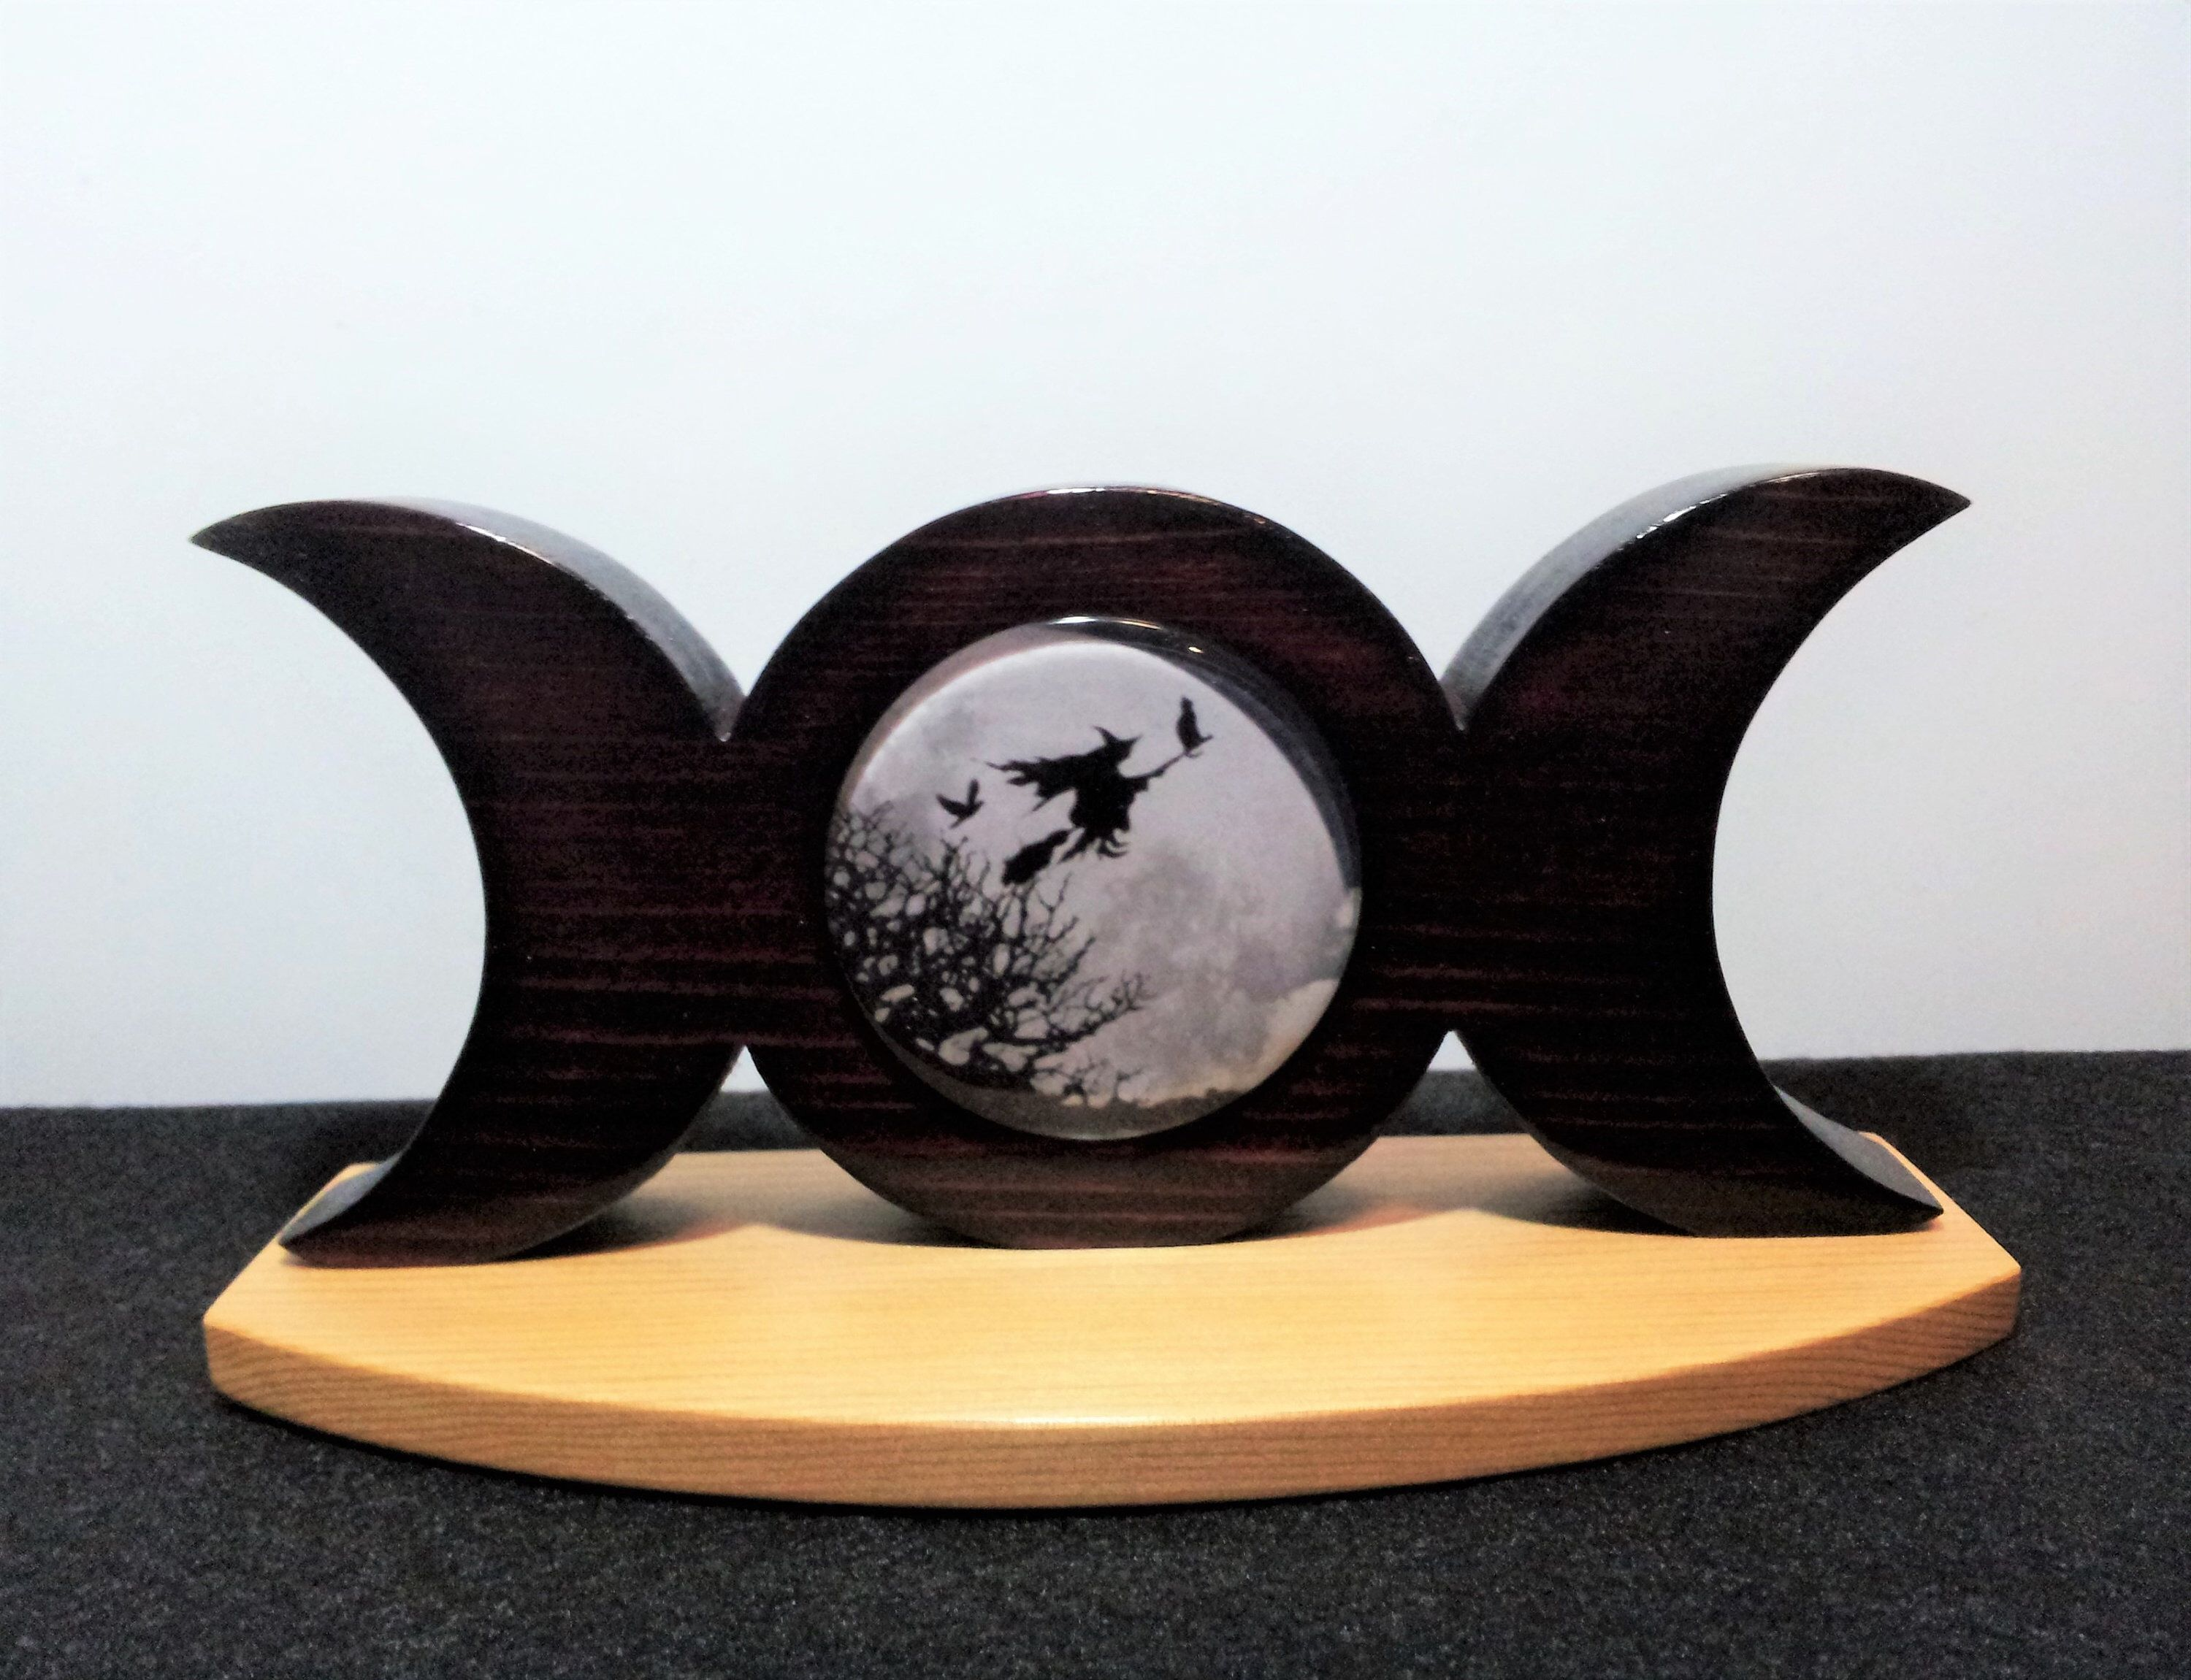 Witch Triple Moon made from mahogany stained cedar wood, altar piece, spiritual, pagan, wiccan decor, goddess symbolism, witchcraft #wiccandecor Excited to share this item from my #etsy shop: Witch Triple Moon made from mahogany stained cedar wood, altar piece, spiritual, pagan, wiccan decor, goddess symbolism, witchcraft #wiccandecor